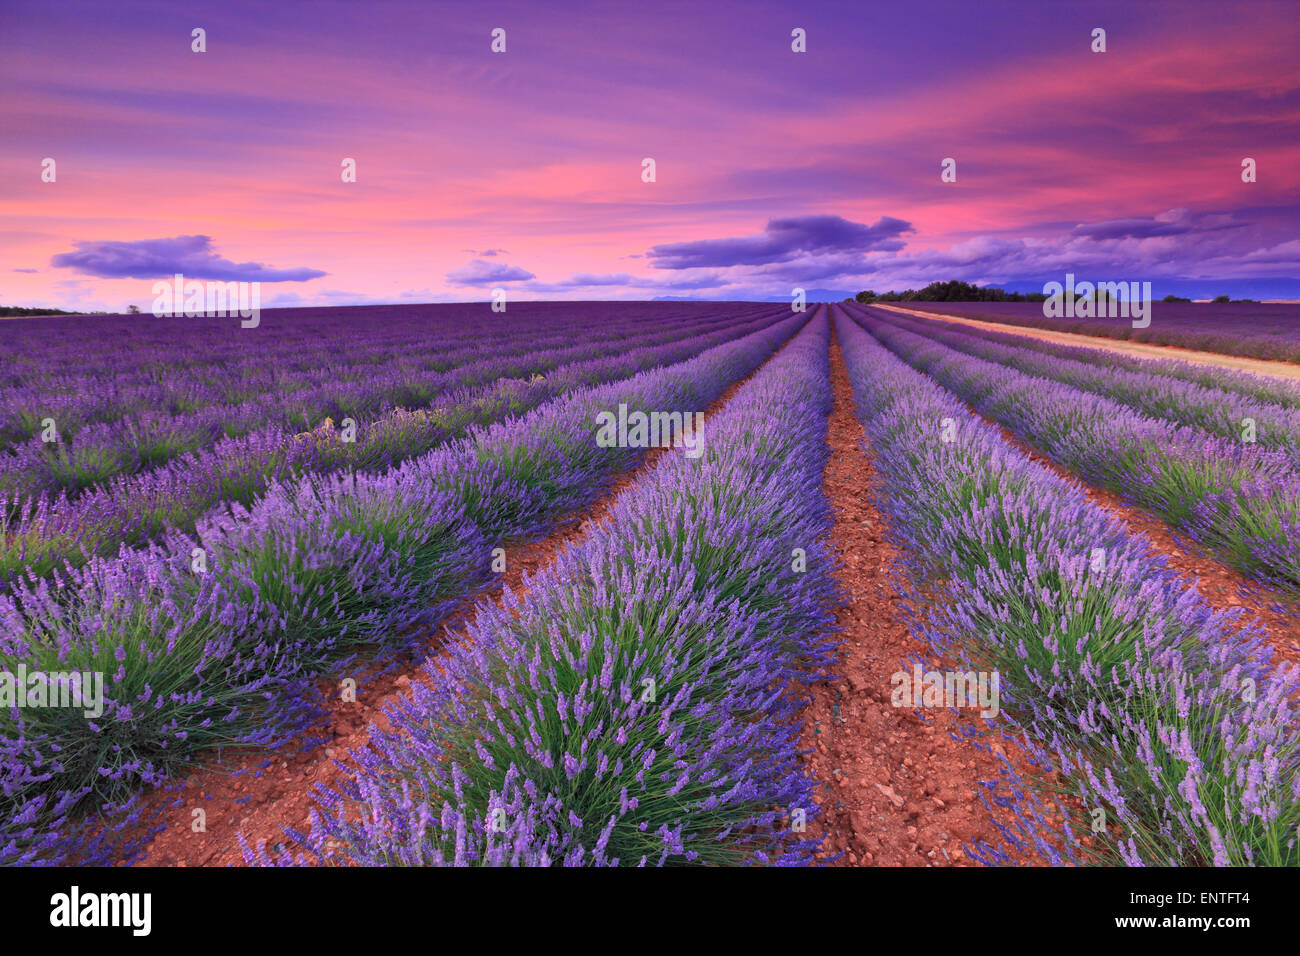 Lavender field with pink cloud sunset. France, Provence. - Stock Image